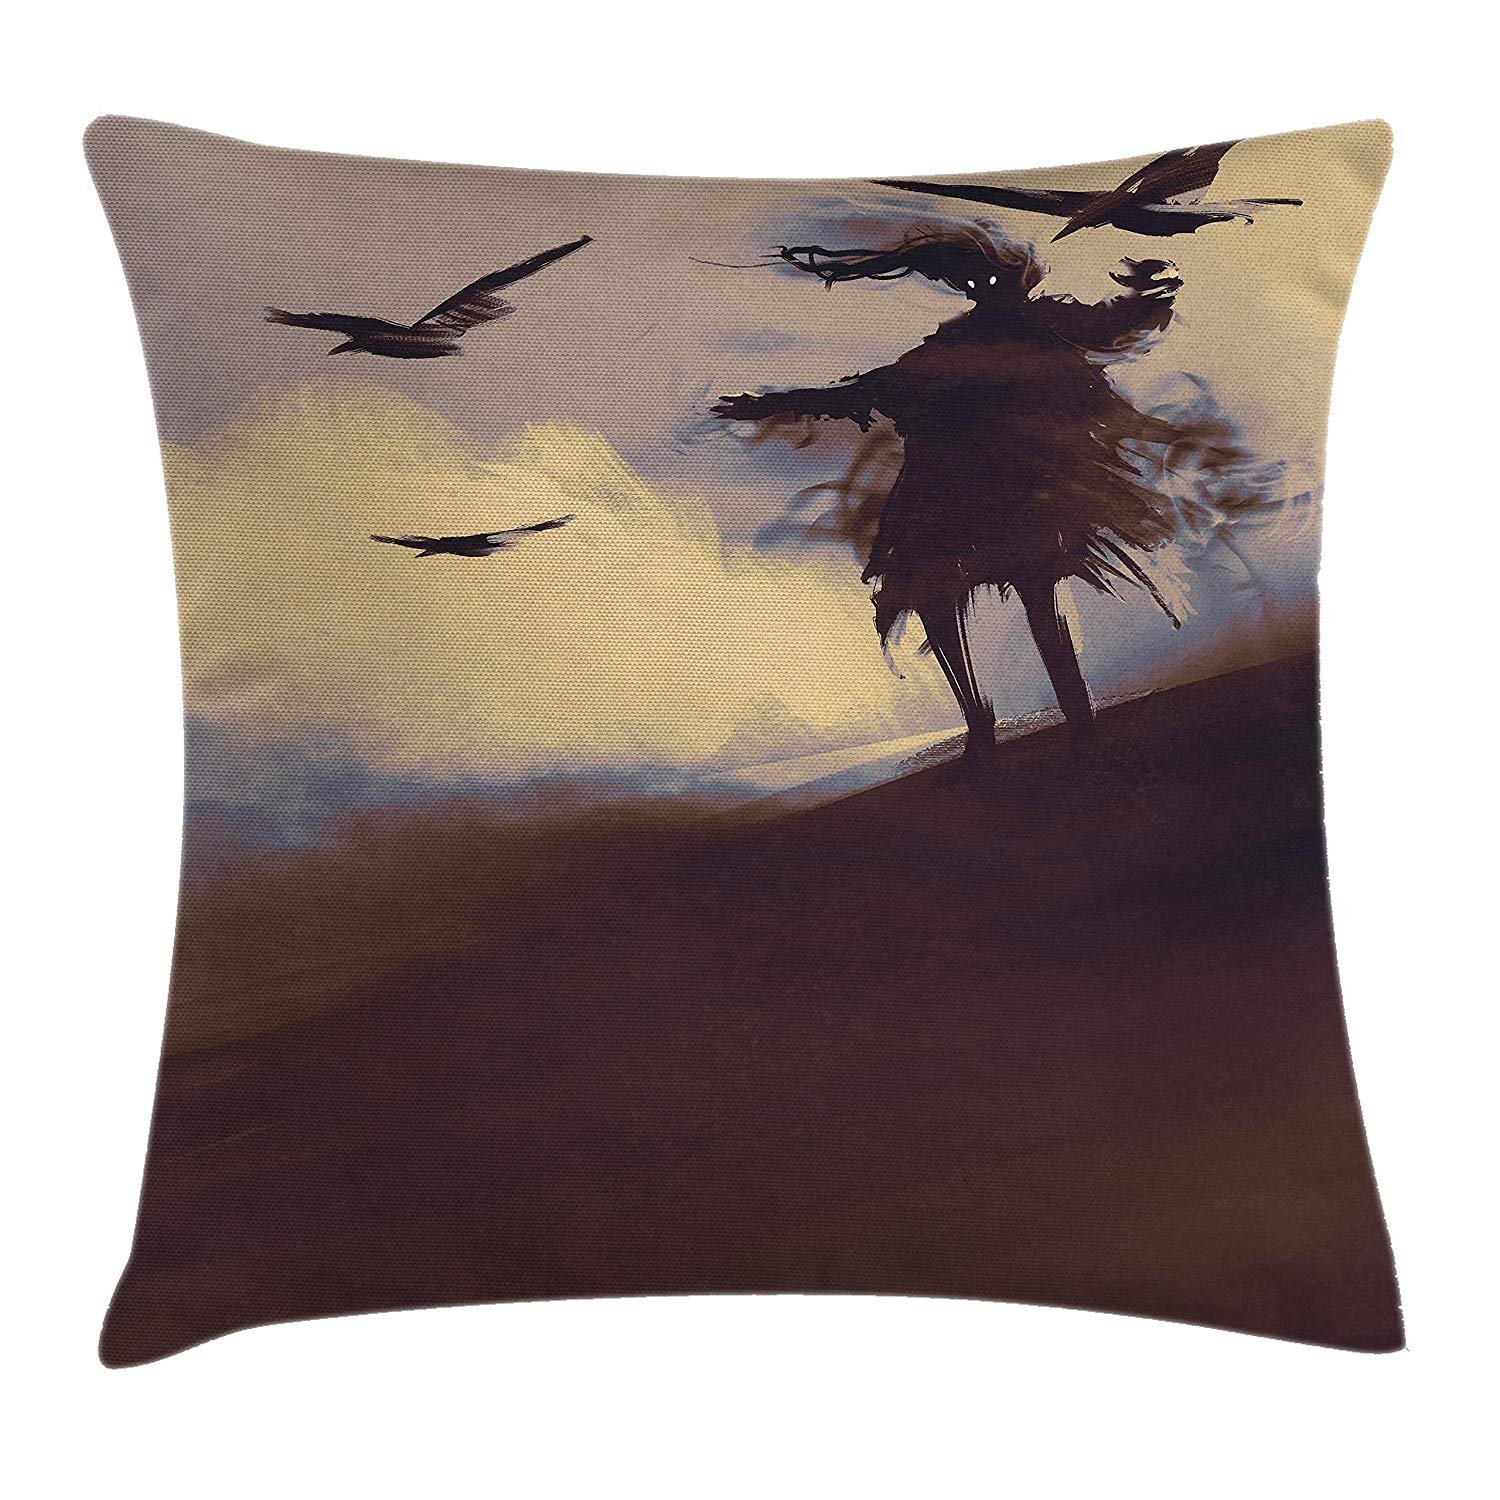 Queen Area Horror Dark Soul From a Scary Movie on the Hills Clouds Flying Crows Print Square Throw Pillow Covers Cushion Case Sofa Bedroom Car 18x18 Inch, Brown Mauve Begie